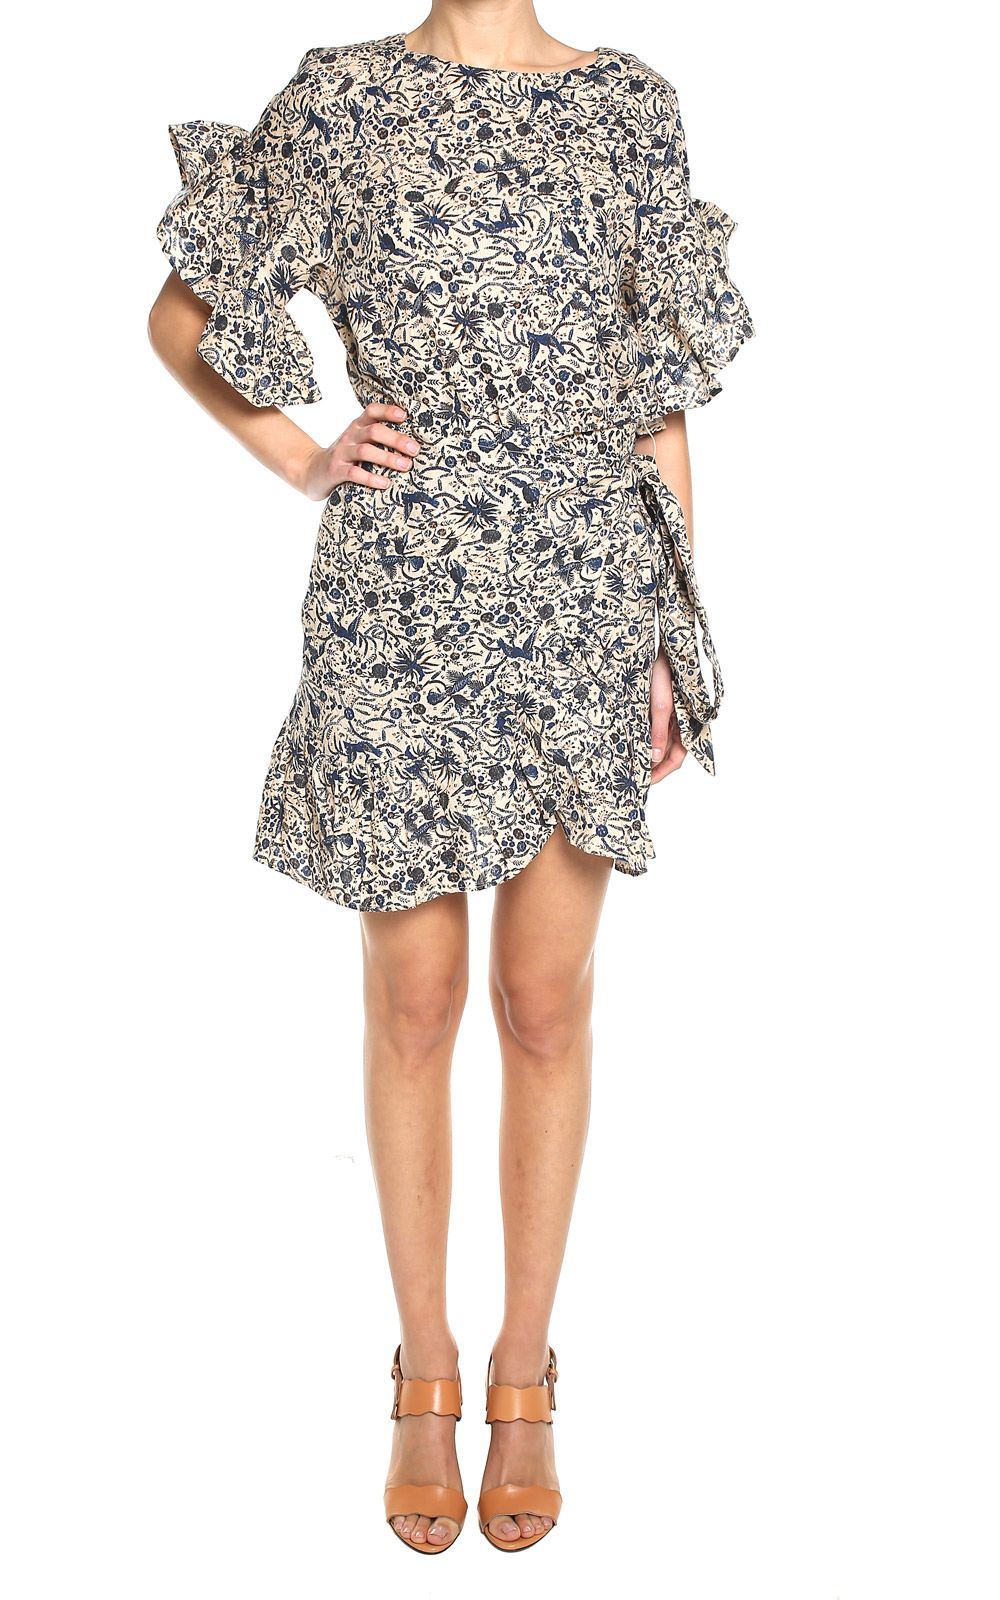 Delicia ruffle-trimmed floral-print linen dress Isabel Marant Discount Pay With Visa Visa Payment Sale Online Discount Latest Collections OZQ4wqr